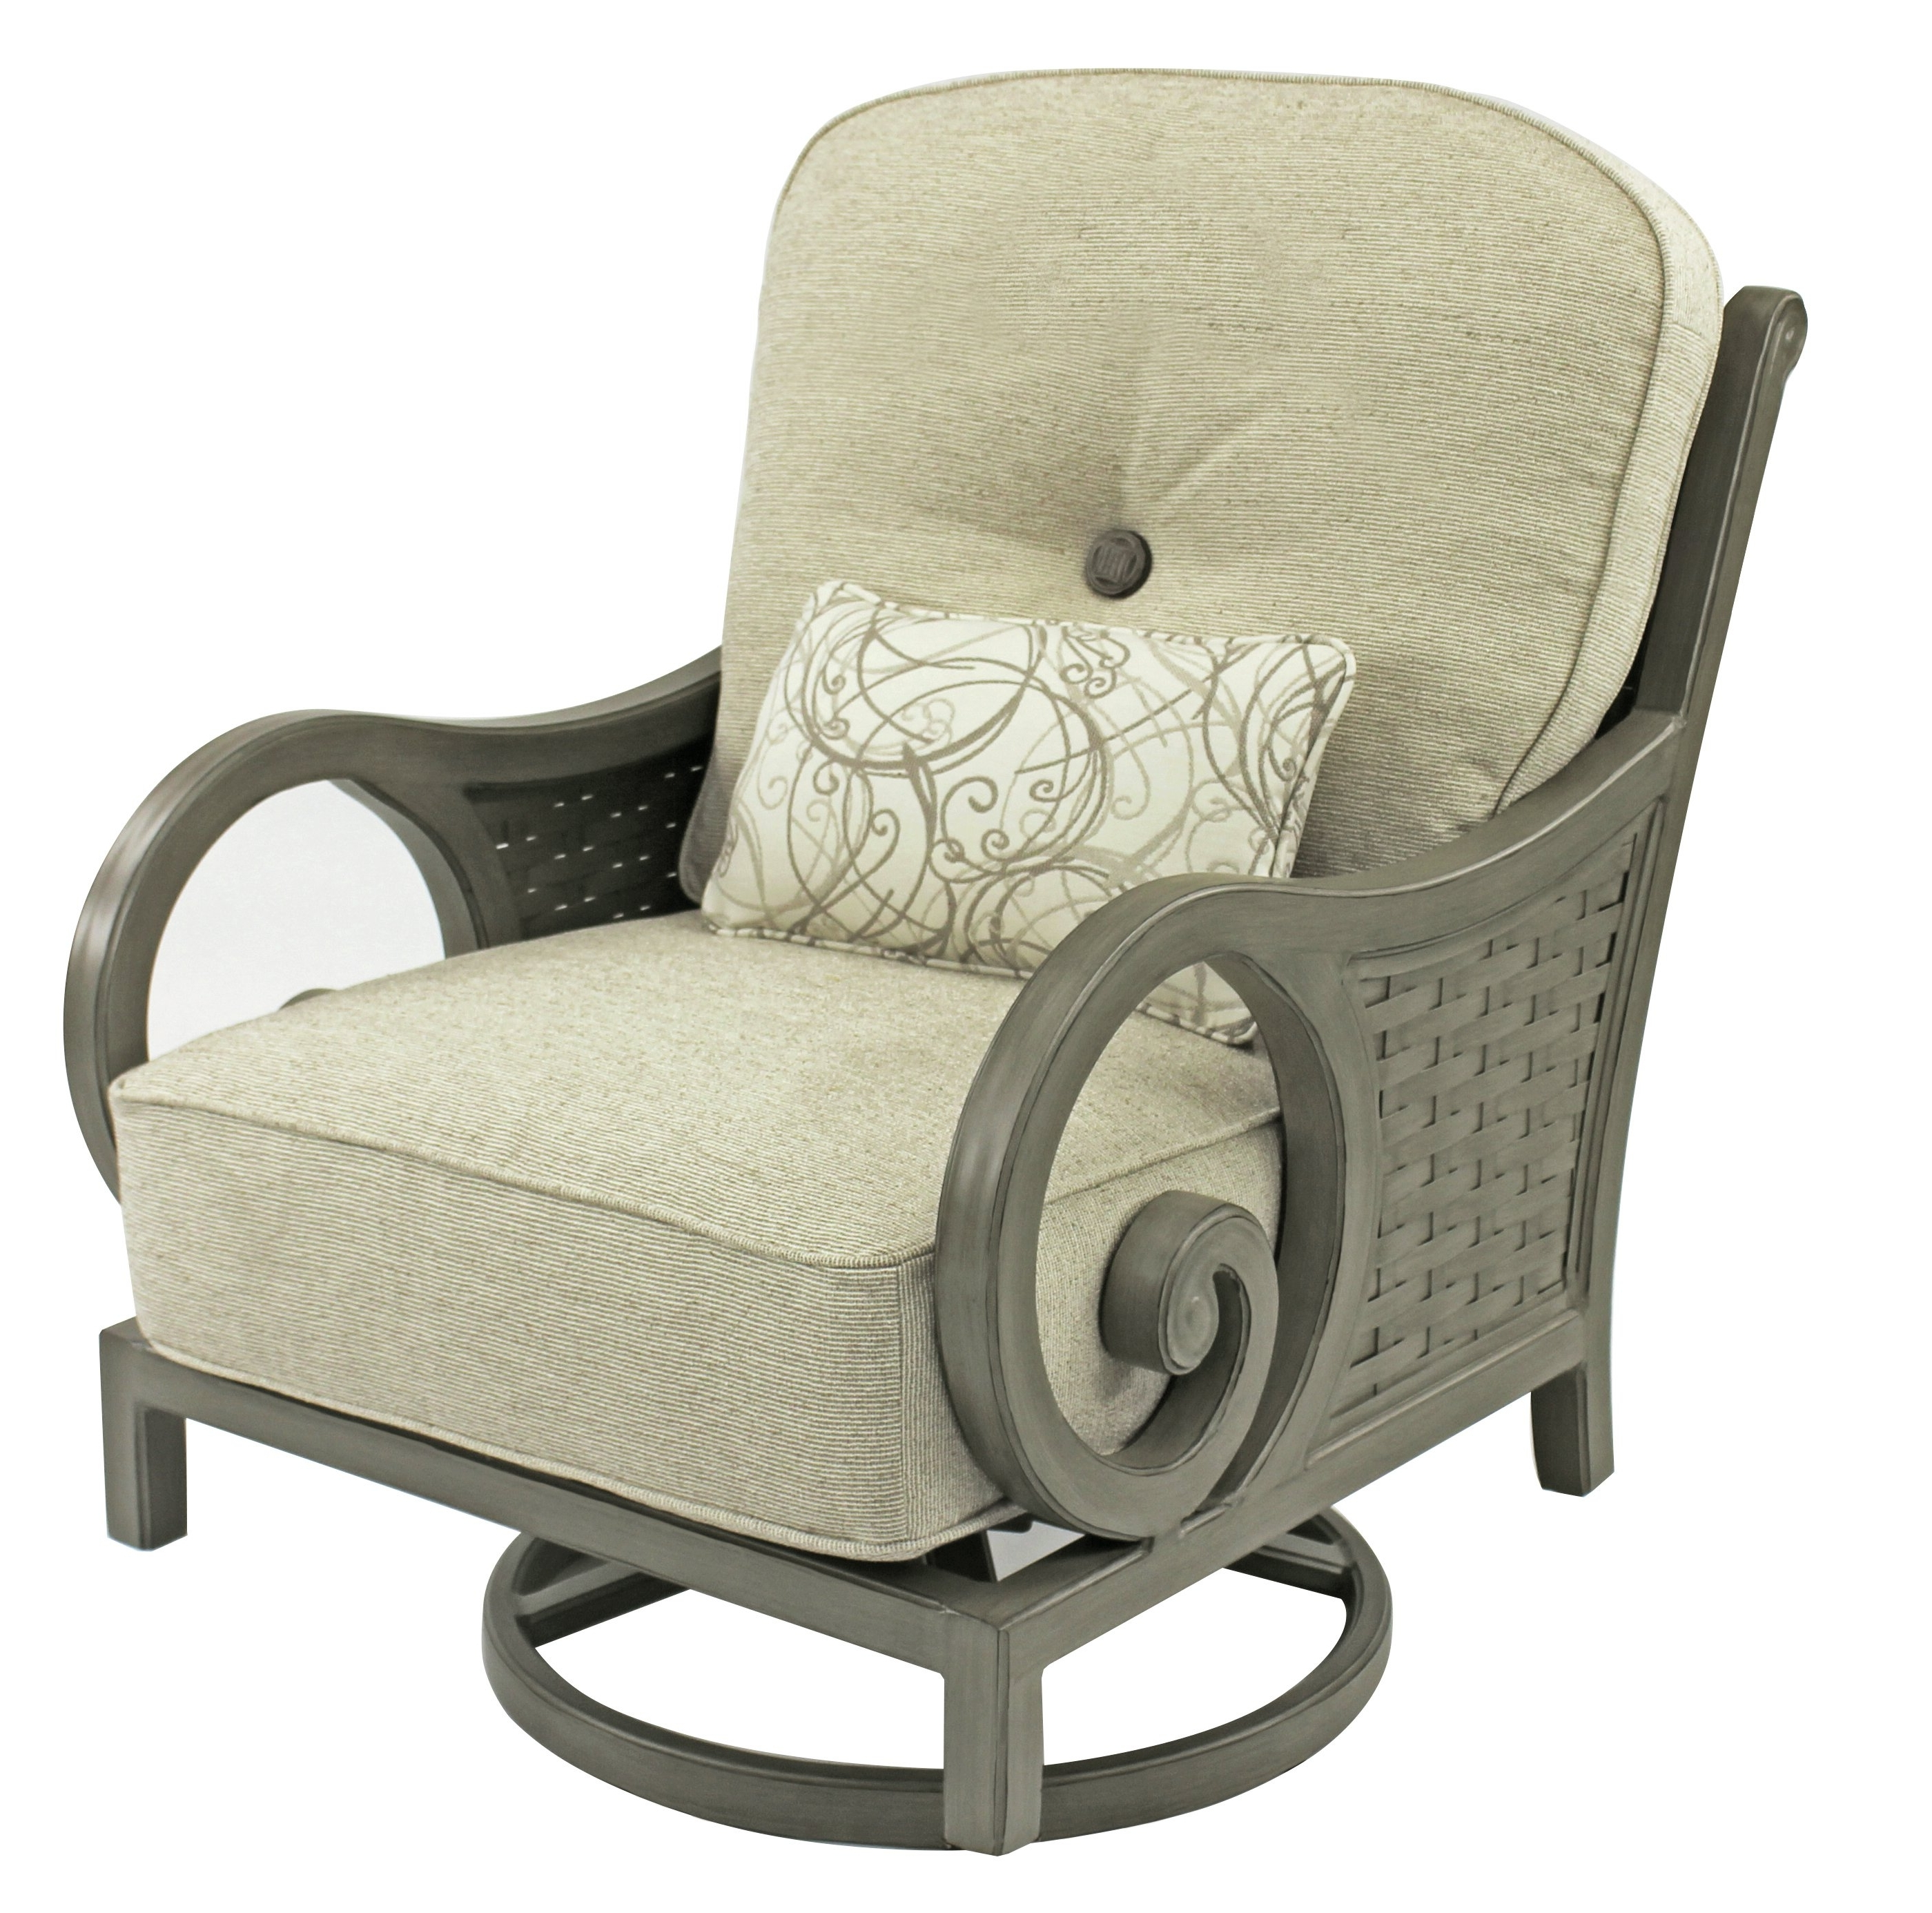 Leona Riviera High Back Swivel Rocking Chair With Cushion & Reviews Regarding Latest High Back Rocking Chairs (View 10 of 15)